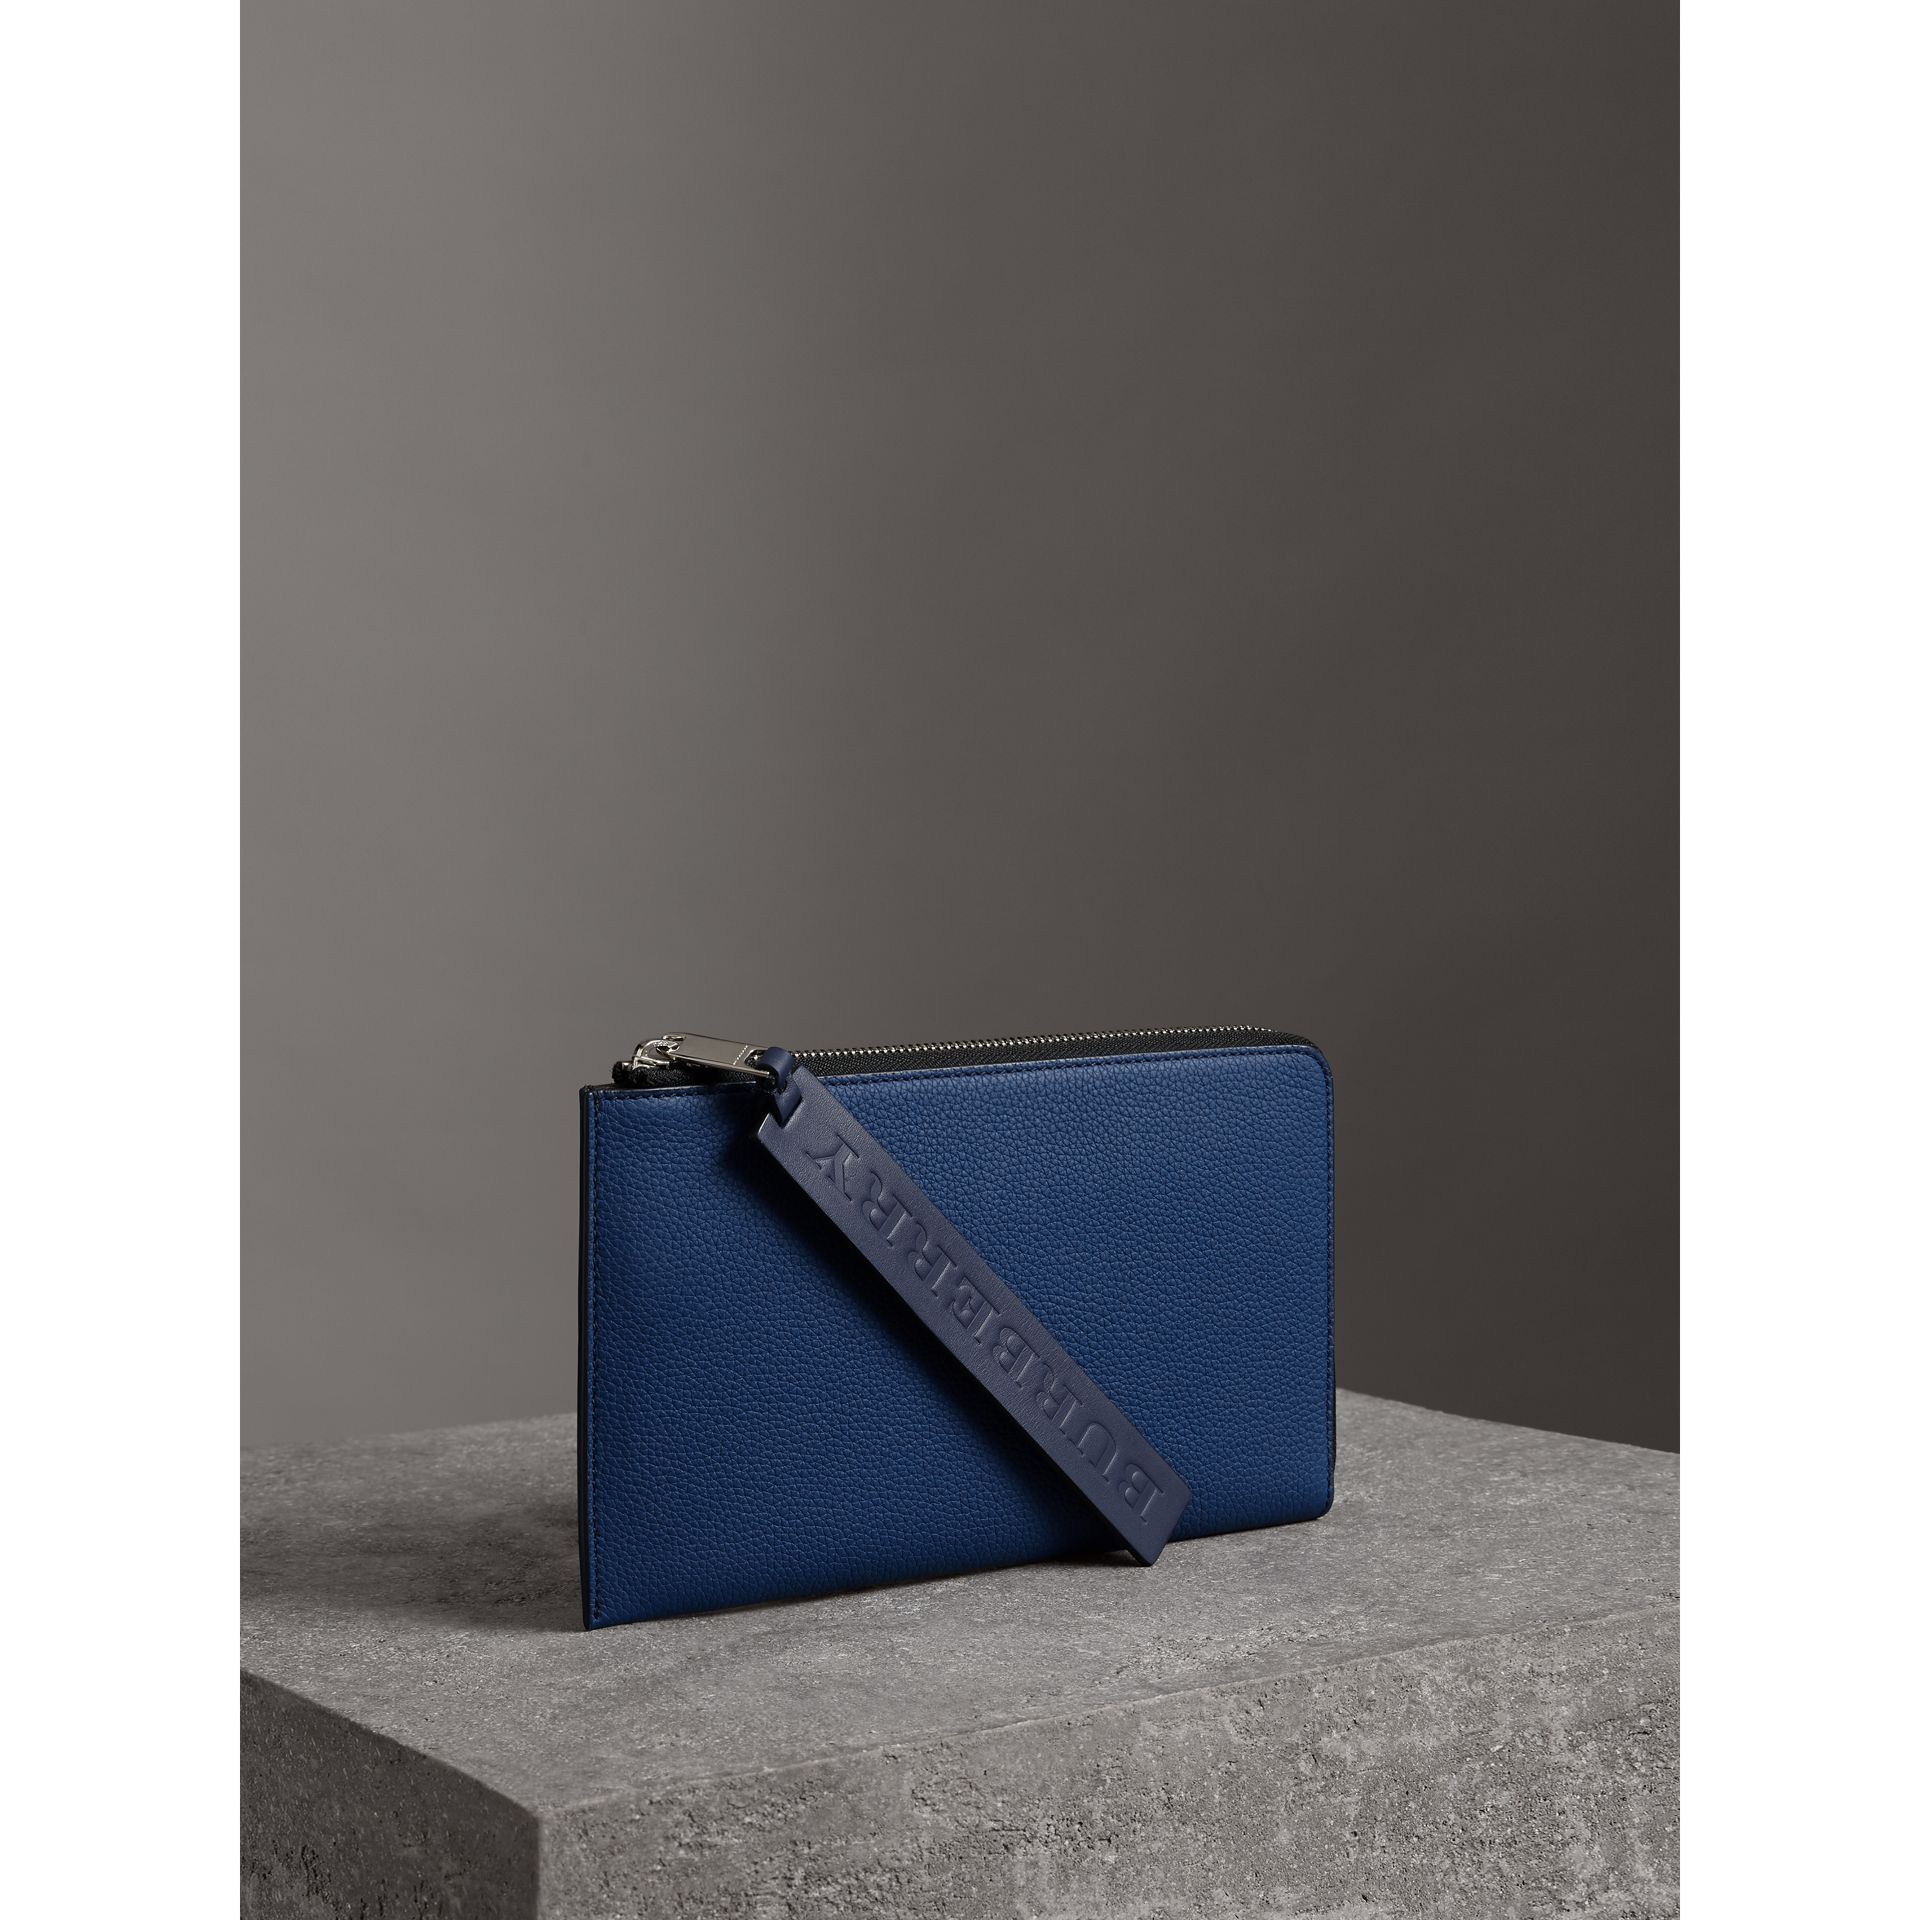 Two-tone Grainy Leather Travel Wallet in Bright Ultramarine - Men | Burberry - gallery image 5